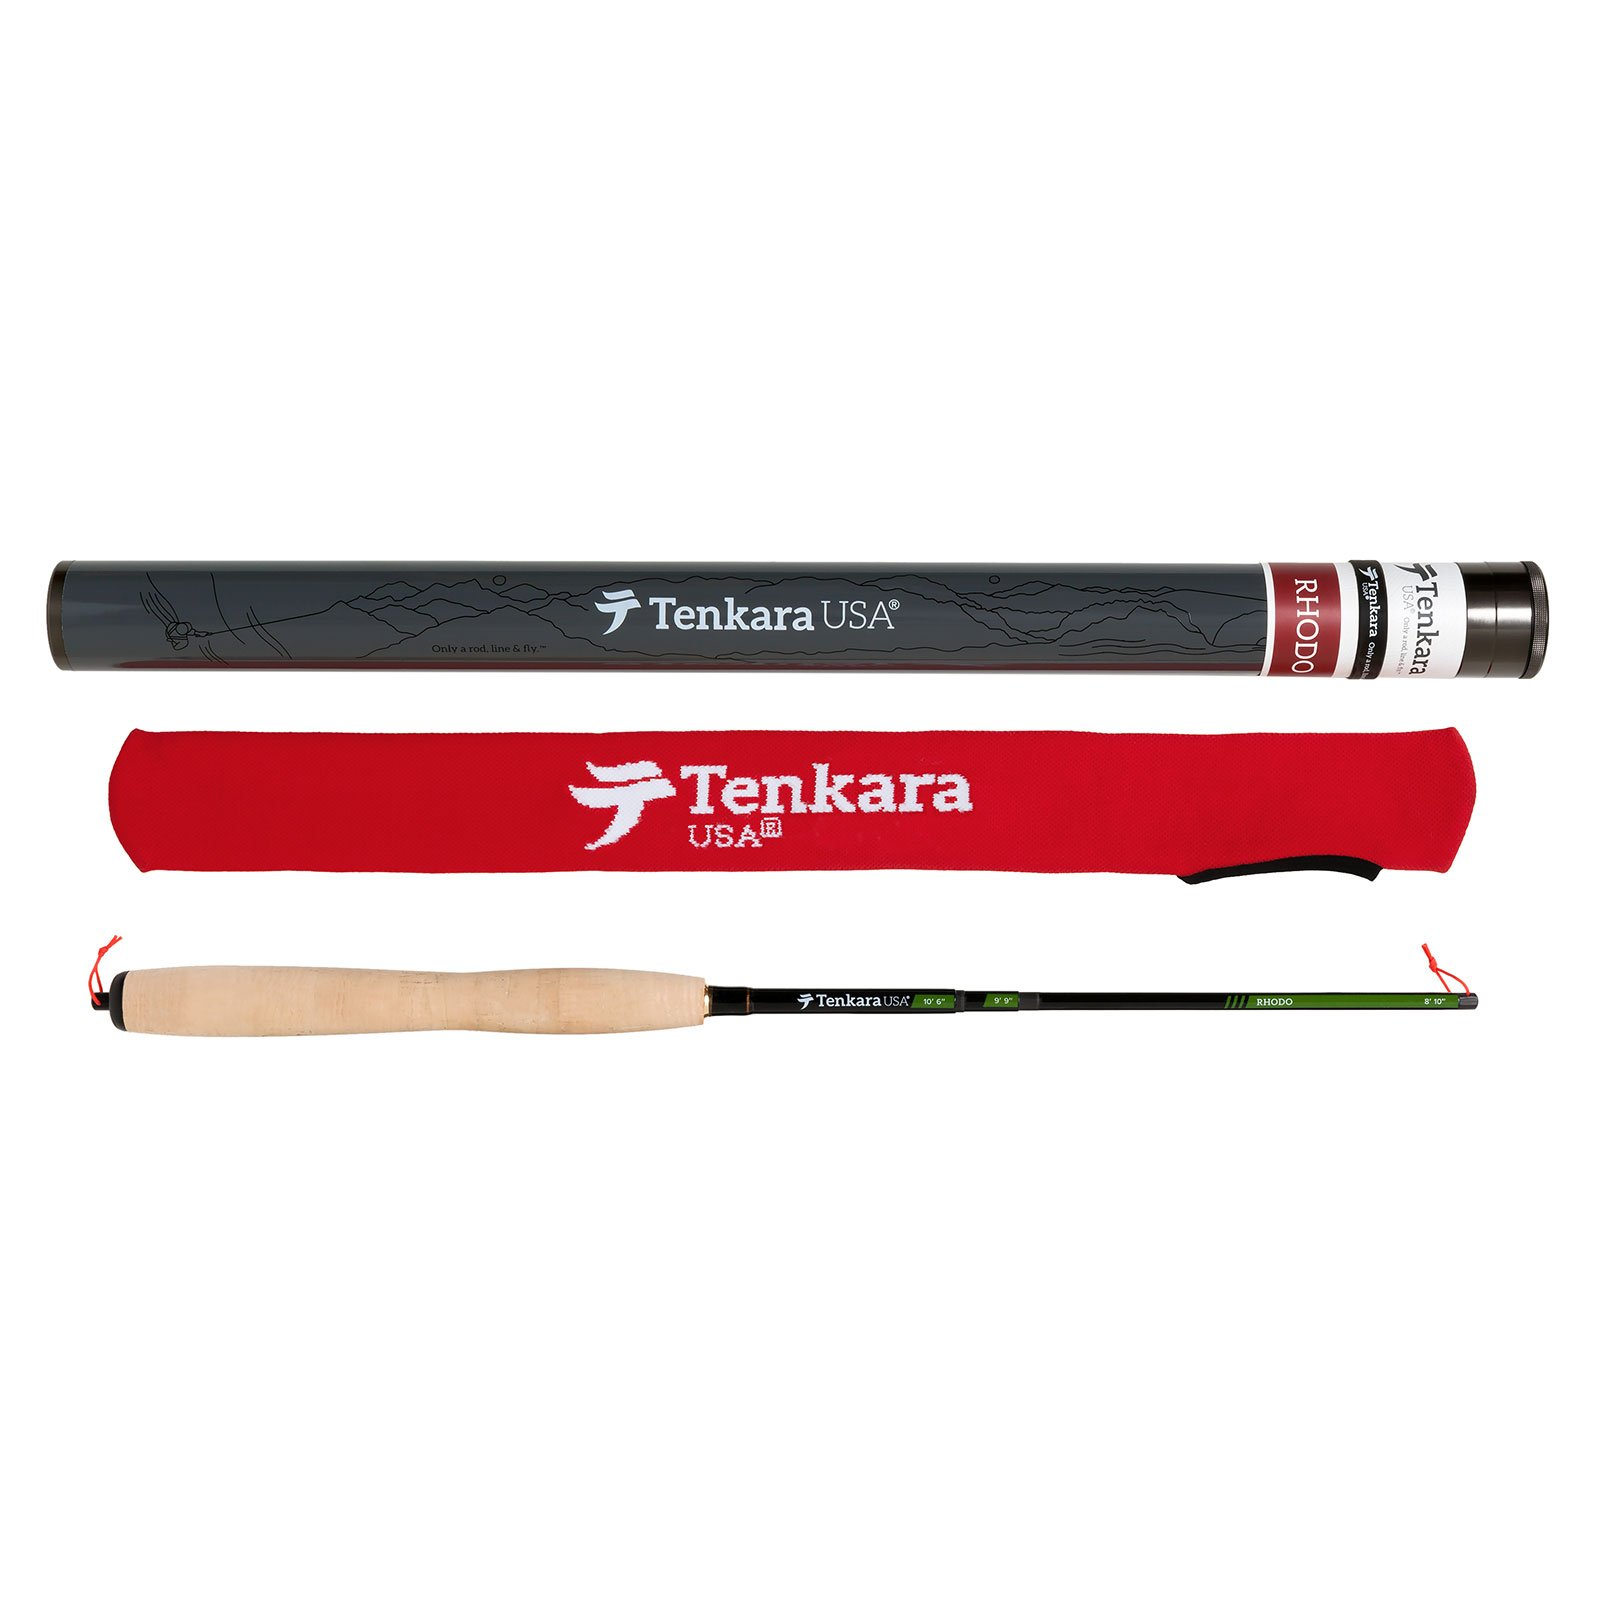 Tenkara Rhodo Fly Fishing Rod Multi-Size Telescopic (8'10', 9'9'', 10'6'')